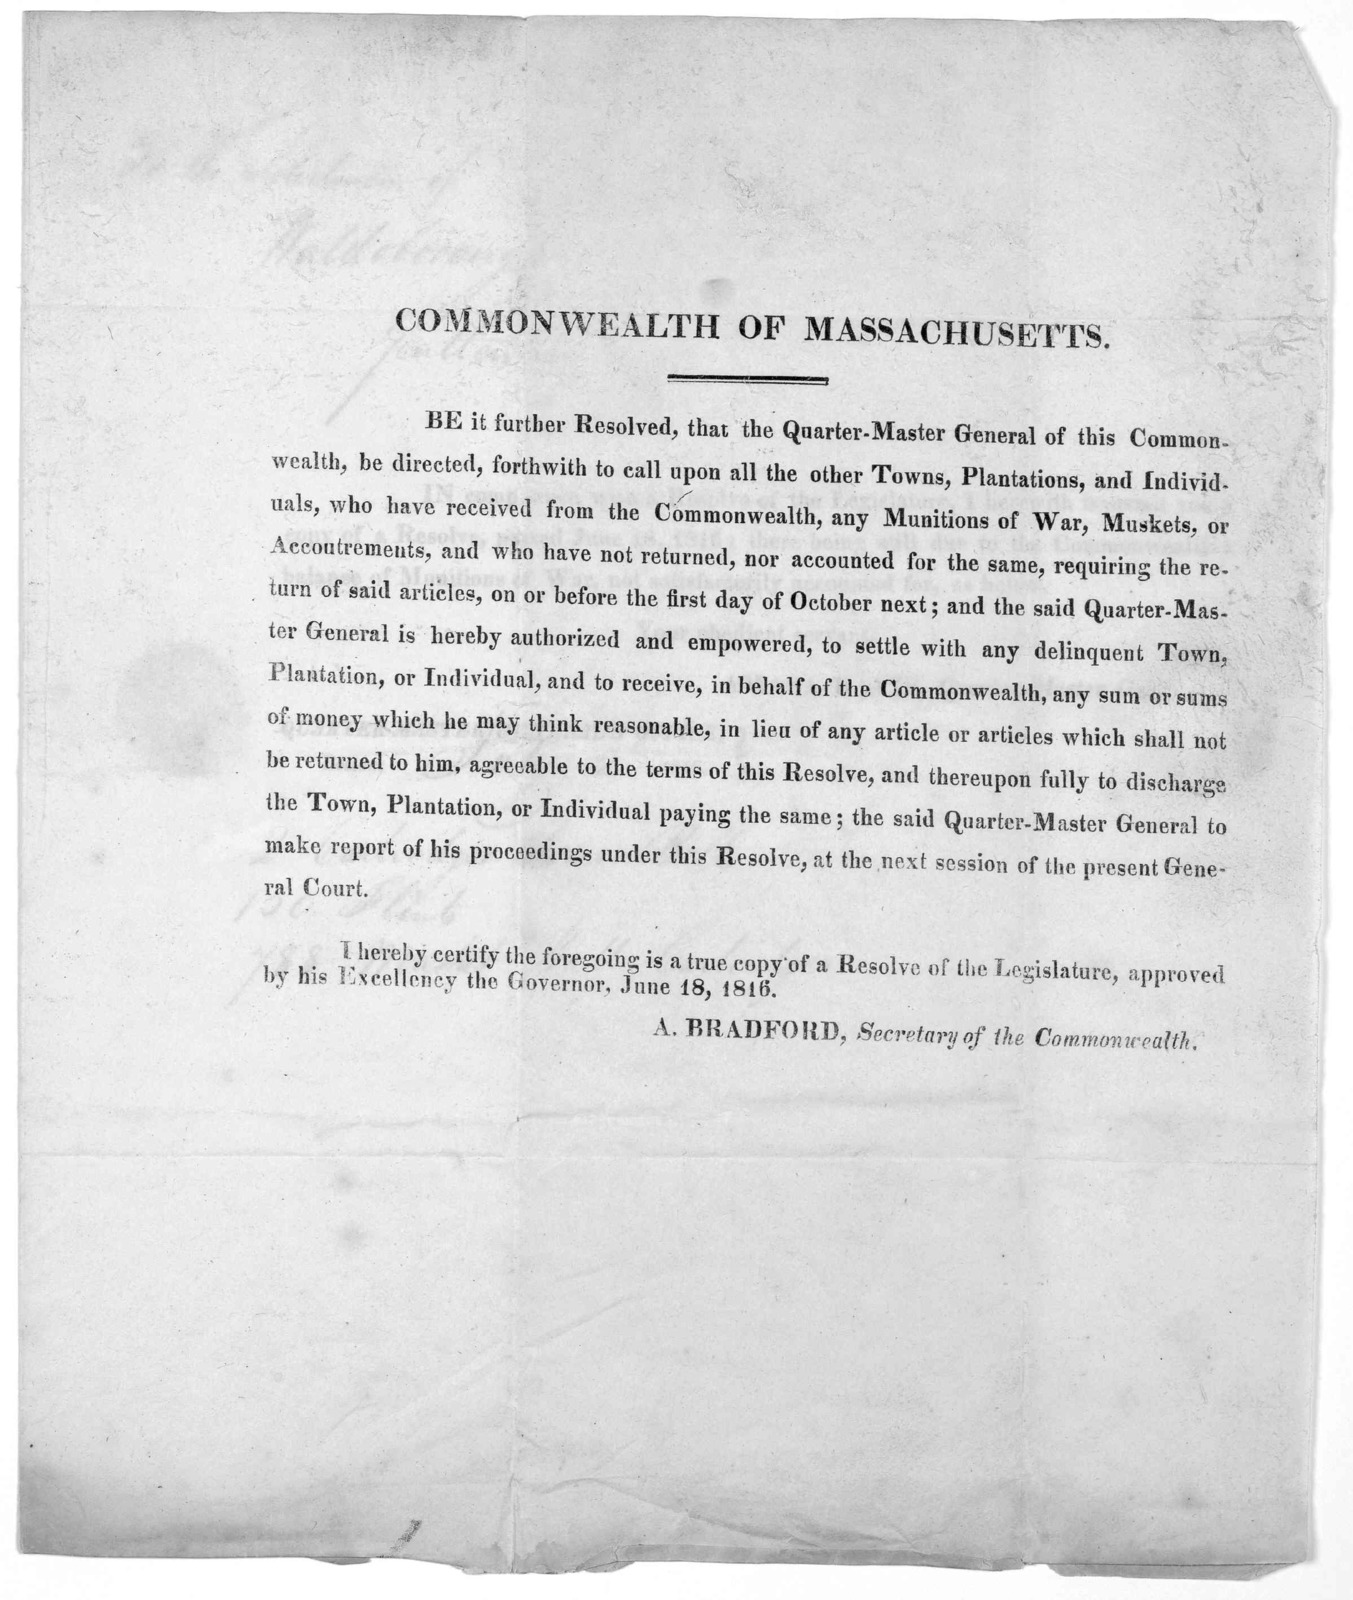 Commonwealth of Massachusetts. Be it further resolved, that the quarter-master general of this Commonwealth, be directed forthwith to call upon all the other towns, plantations, and individuals, who have received from the Commonwealth, any munit